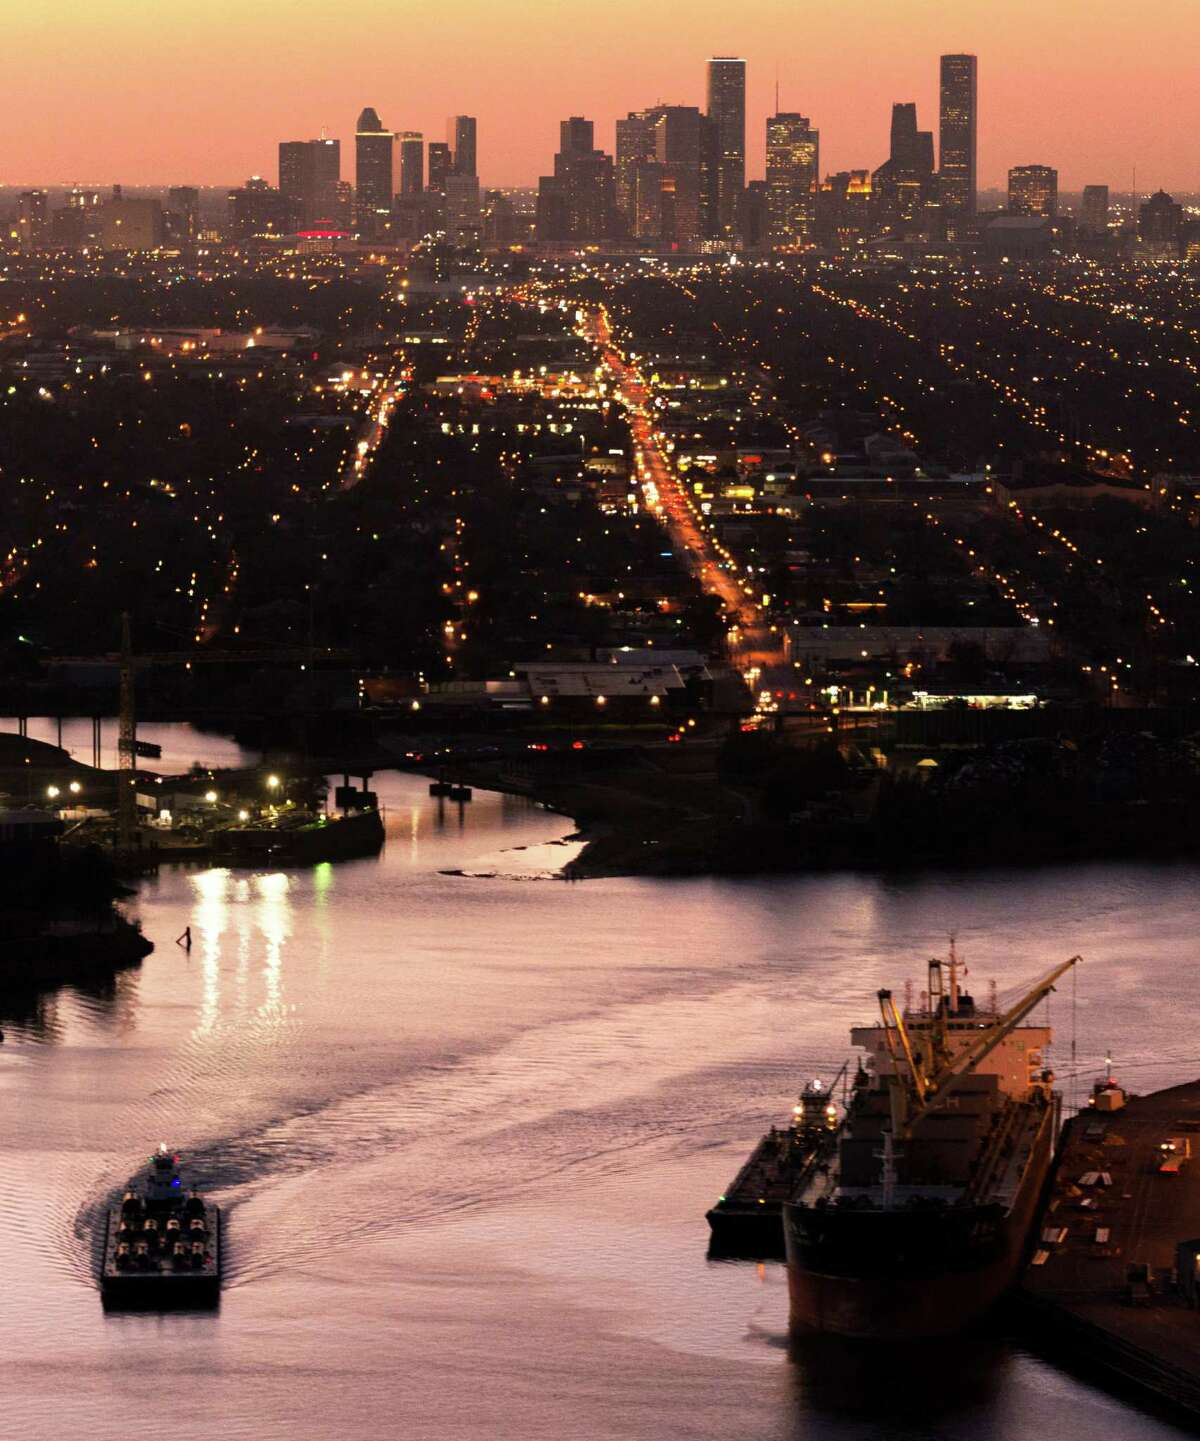 The Houston skyline is seen behind traffic on the Ship Channel. A commercial resources firm says its analysis of economic data shows Texas is doing the third-best job rebounding from the Great Recession.